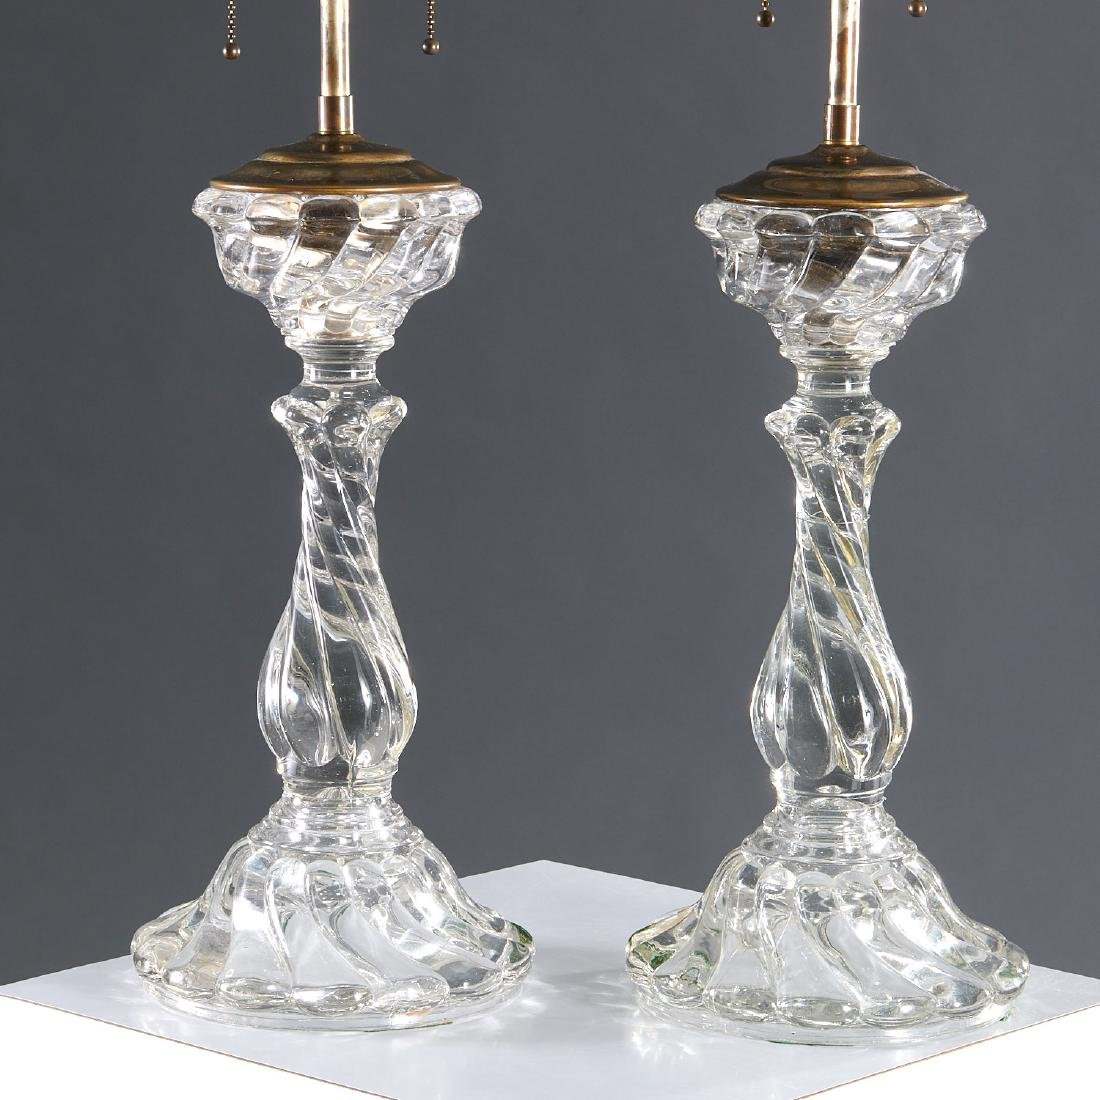 Pair Baccarat glass candlestick lamps